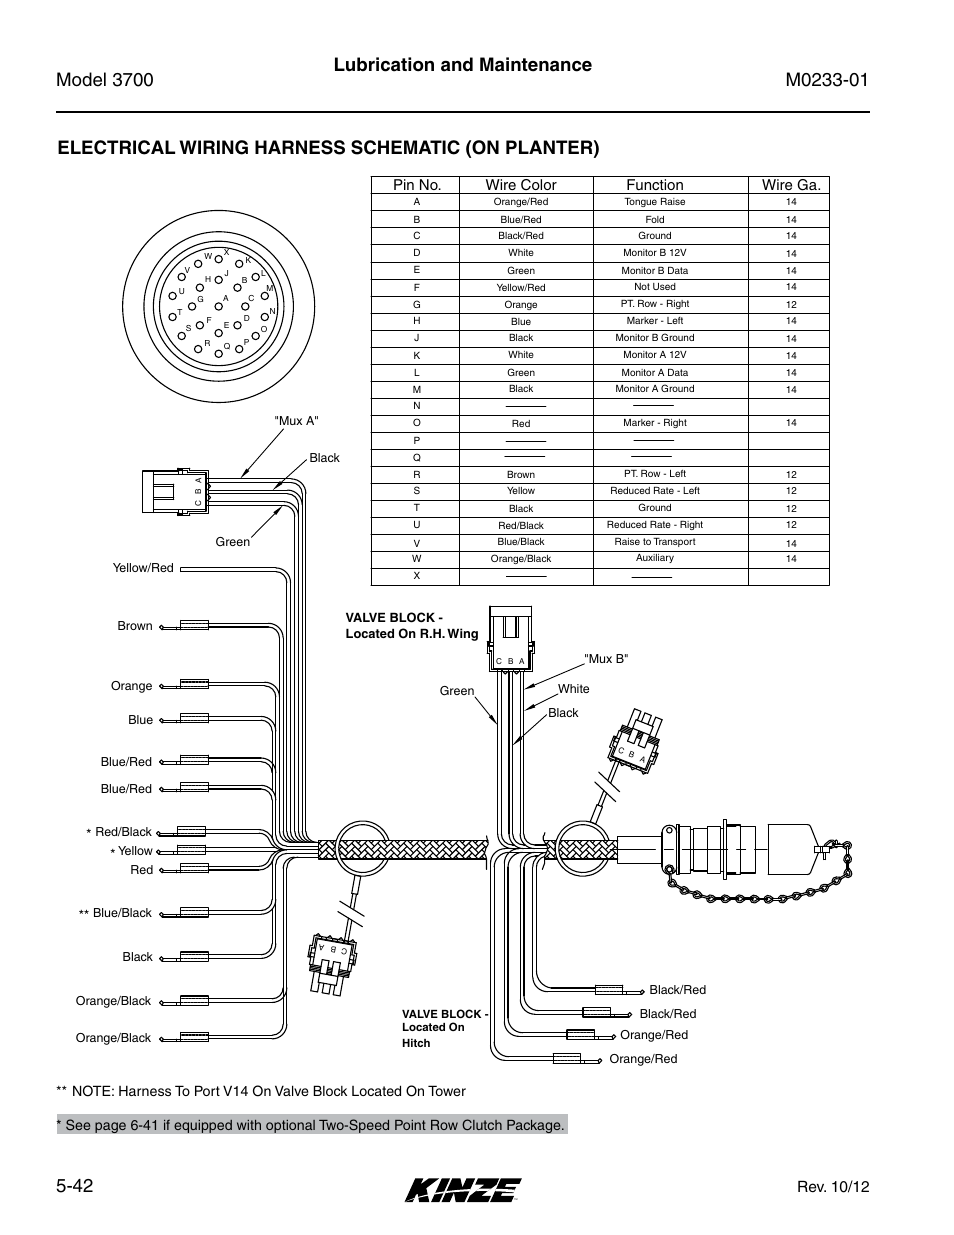 Electrical Wiring Harness Schematic  On Planter   Rev  10